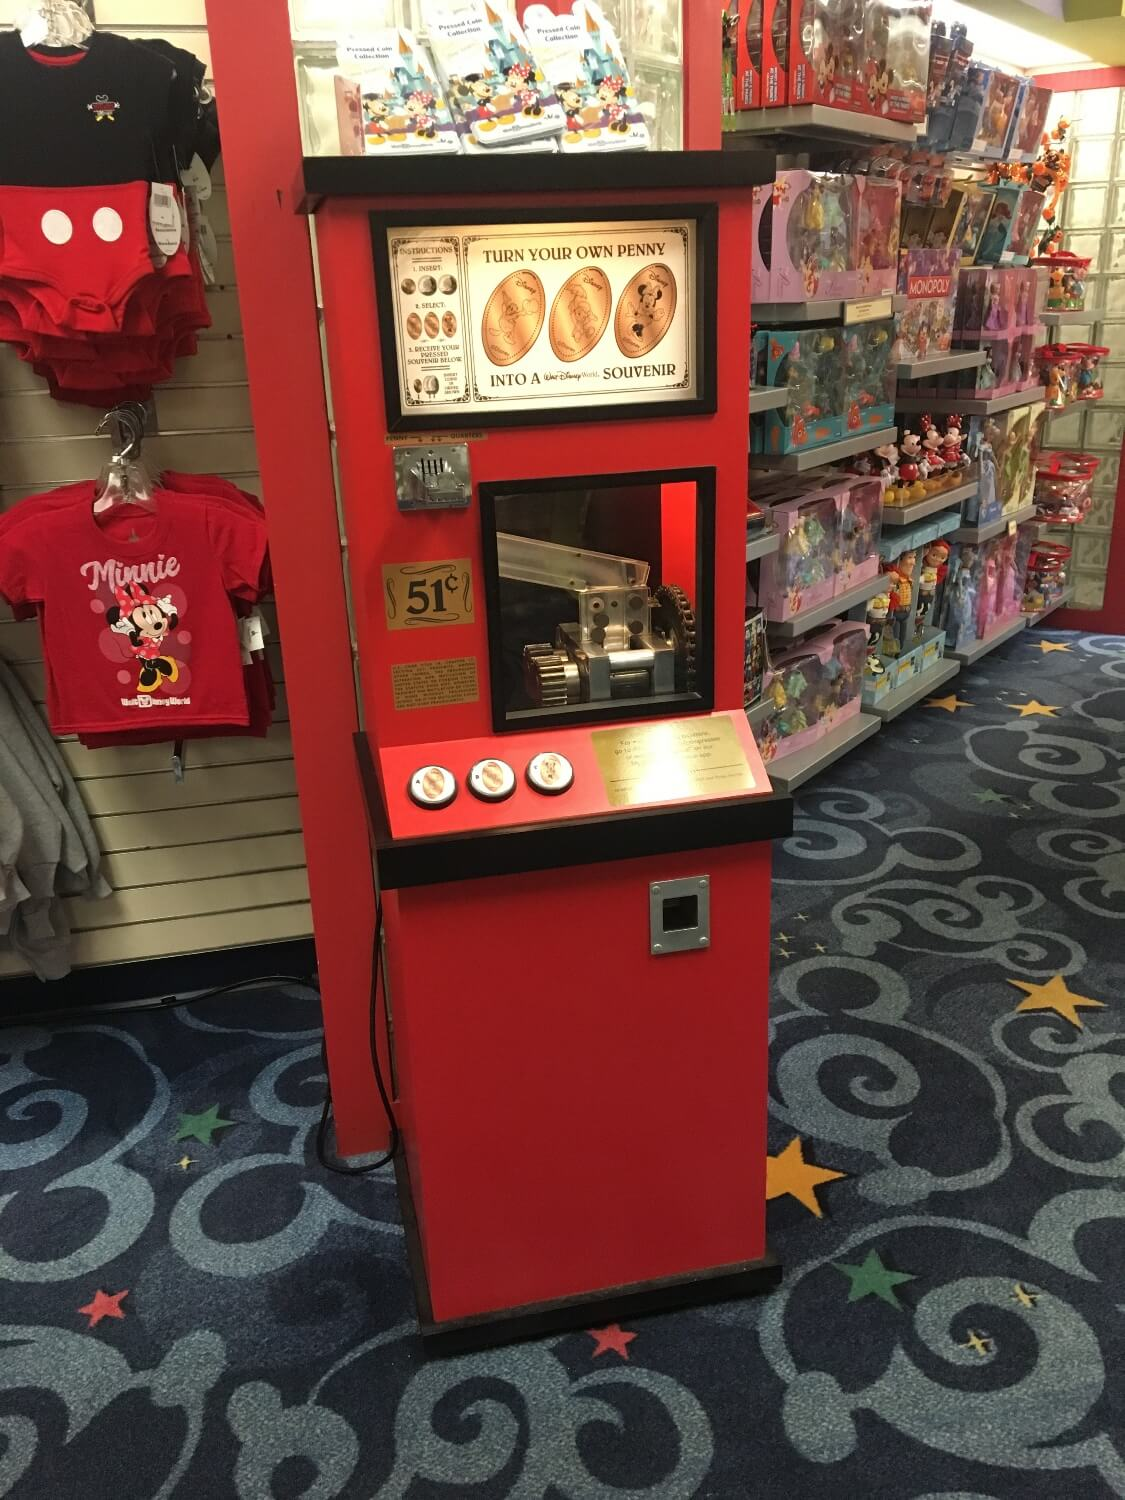 Pressed Penny machine at DoubleTree Suites by Hilton Orlando - Disney Springs Resort Area